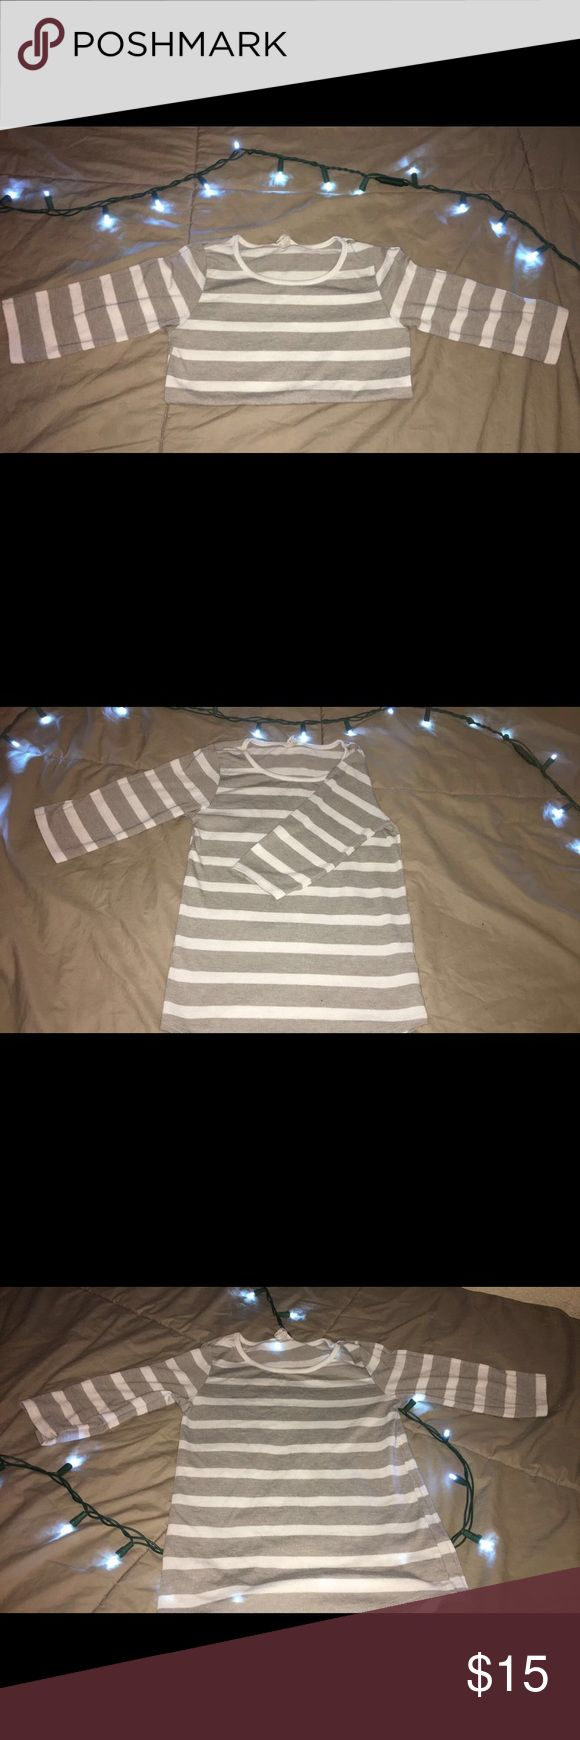 Girls Forever 21 stripped shirt Adorable  three quarter long sleeve stripped shirt! Will work with most if not all outfits because of it's neutral colors! Perfect on a sunny or cloudy day! Forever 21 Shirts & Tops Tees - Long Sleeve